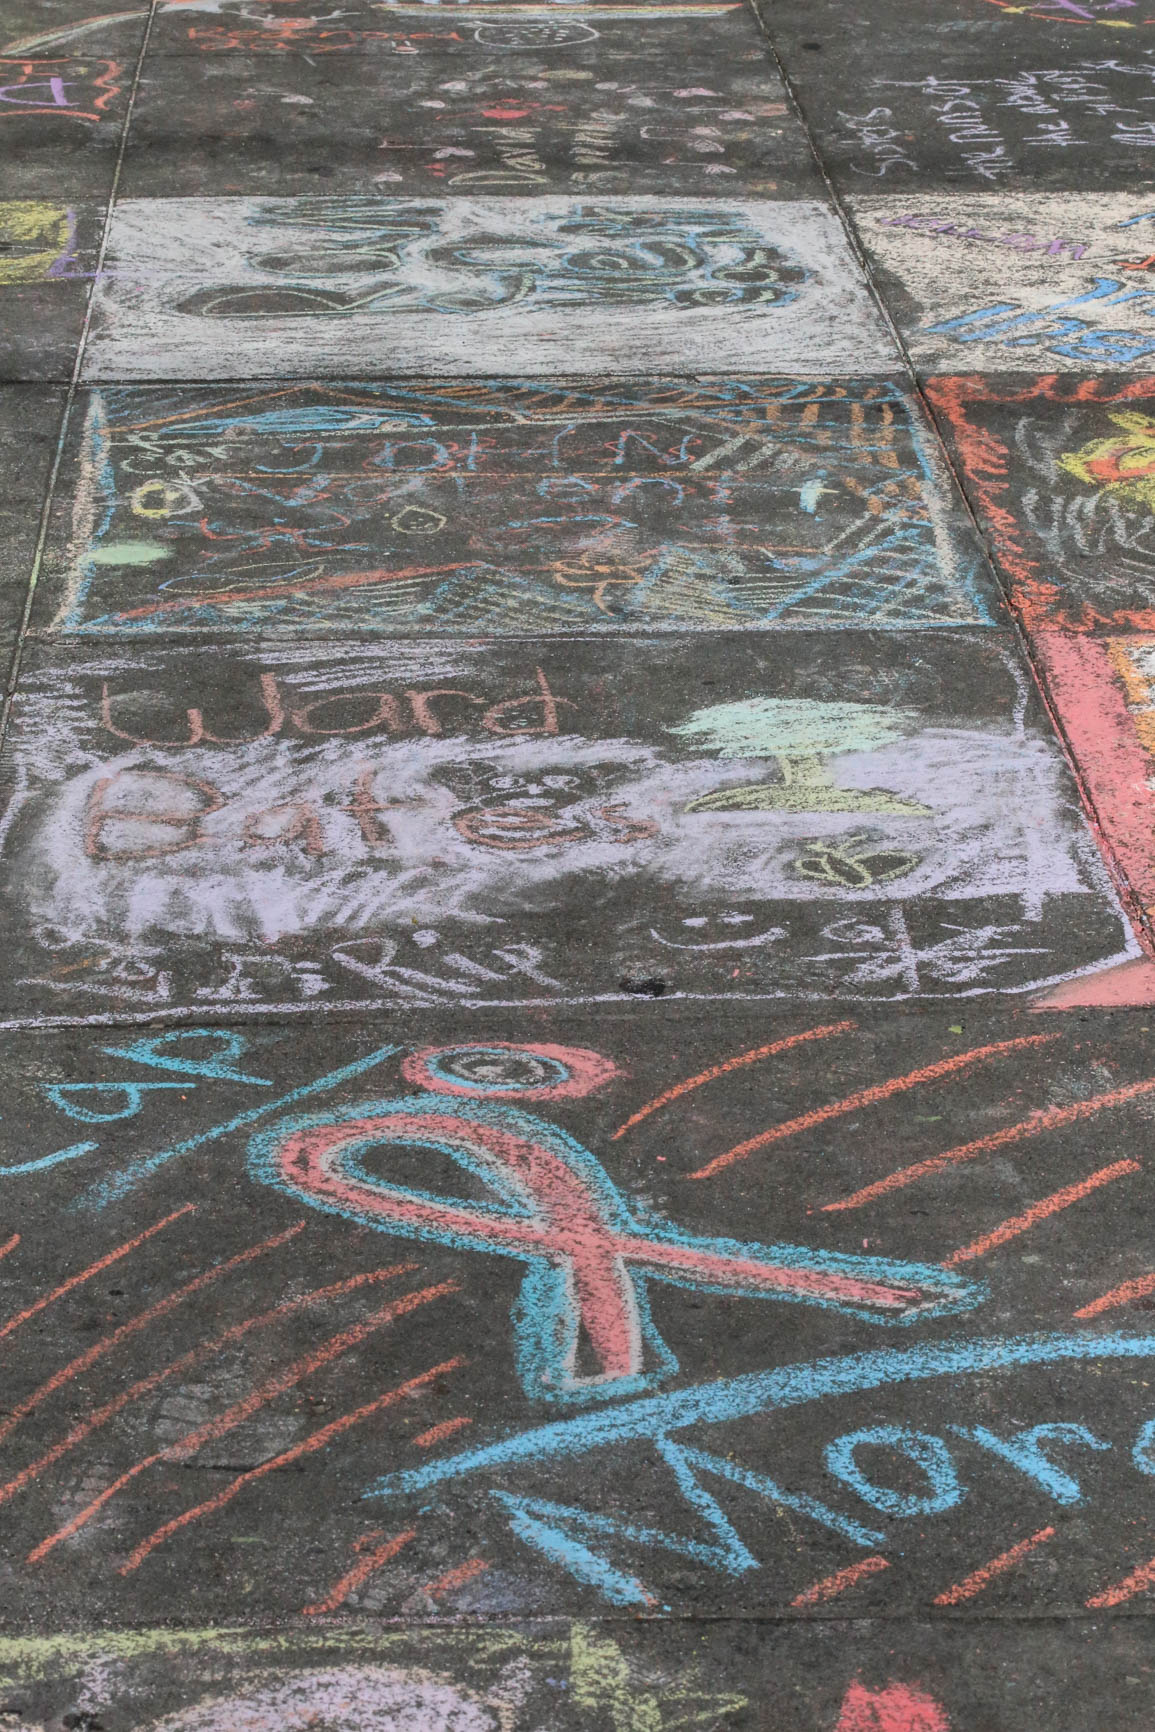 Sidewalk drawings from INSCRIBE where The Castro community gathered to honor the men and women who died of AIDS. Thursday, December 1, 2016, San Francisco, California (Jessica Webb).